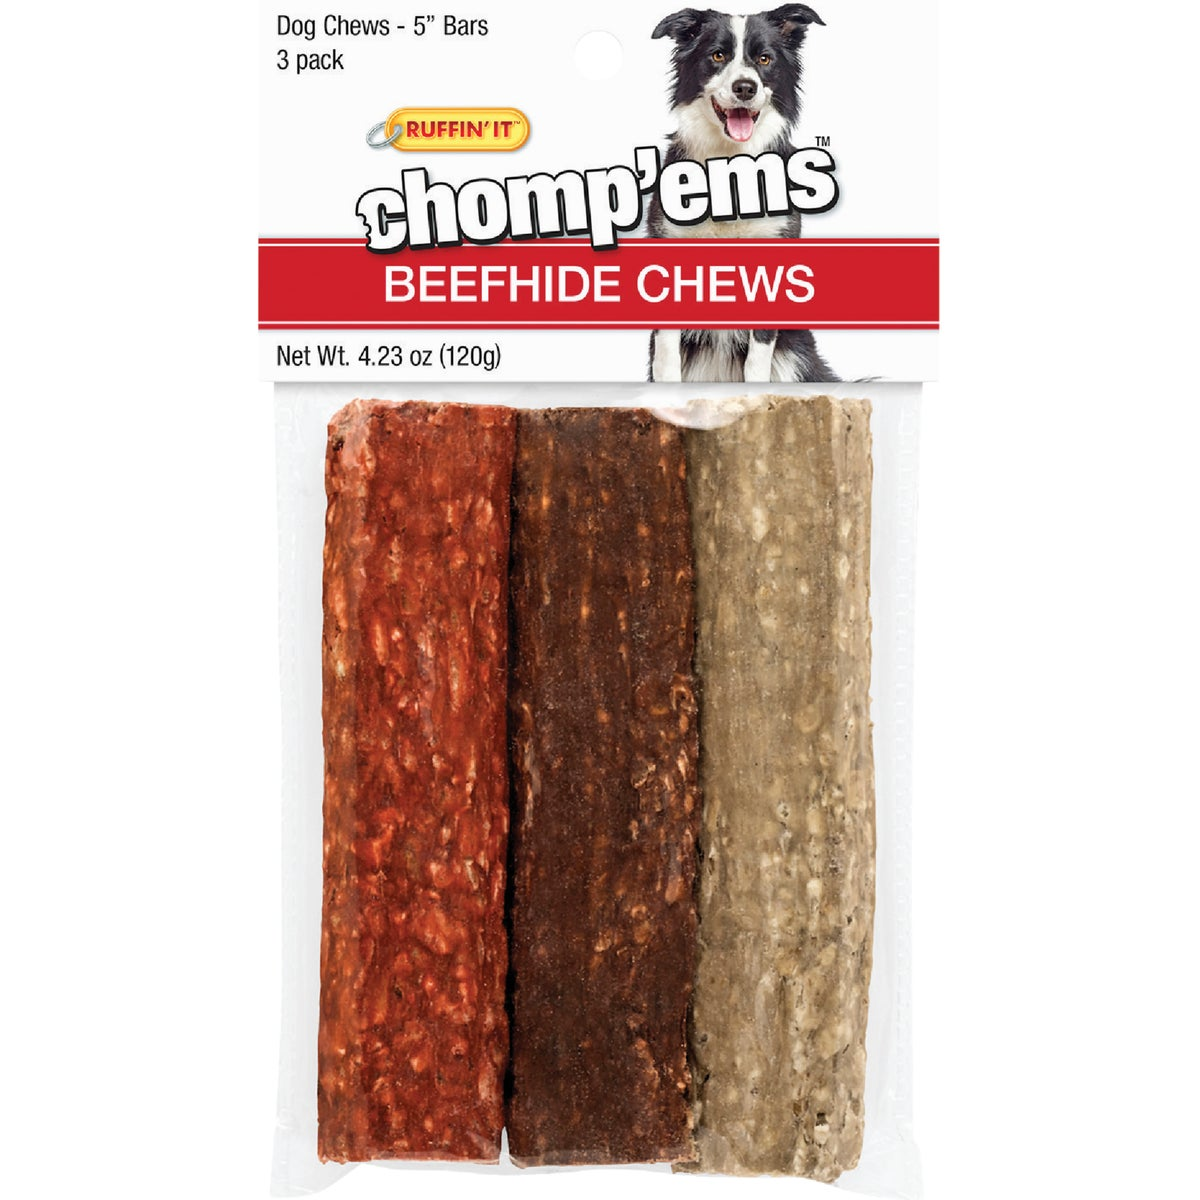 3PK HEAVY CHOMP BAR - 03191 by Westminster Pet